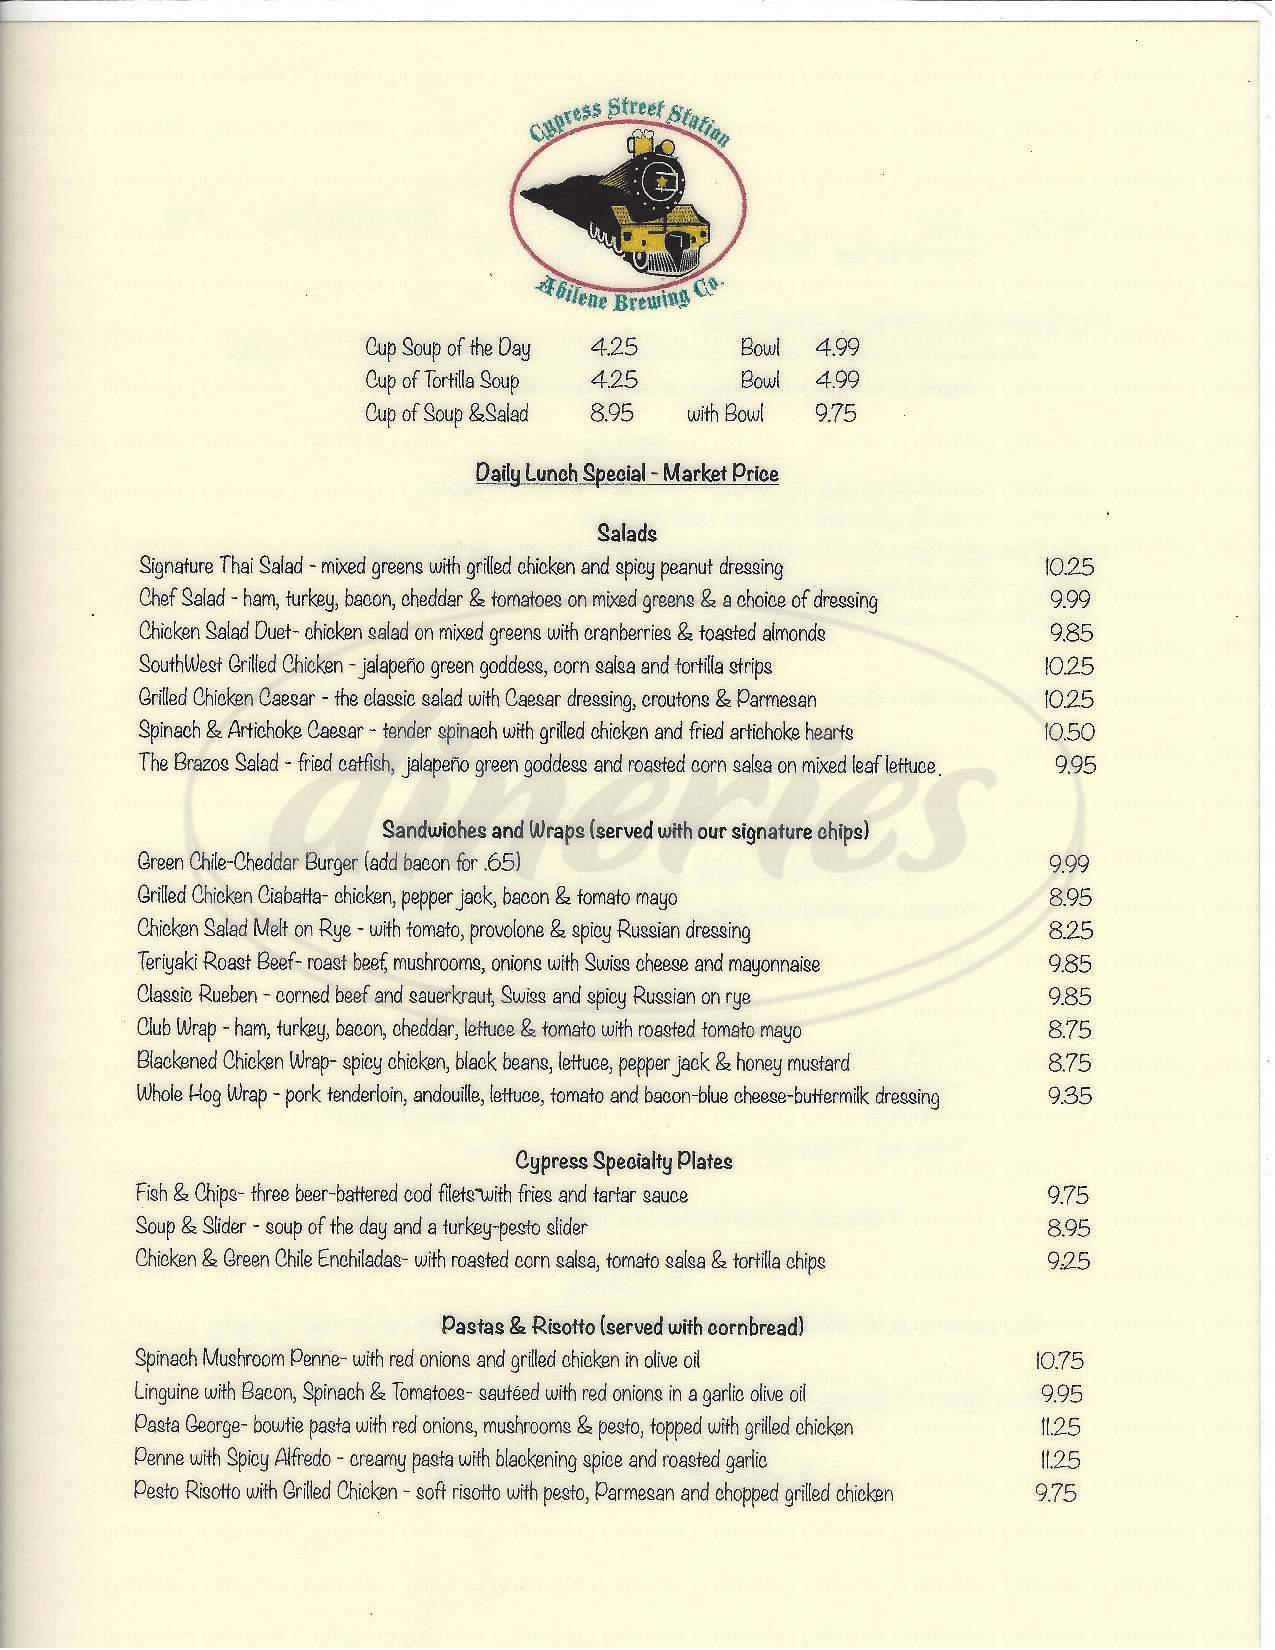 menu for Cypress Street Station